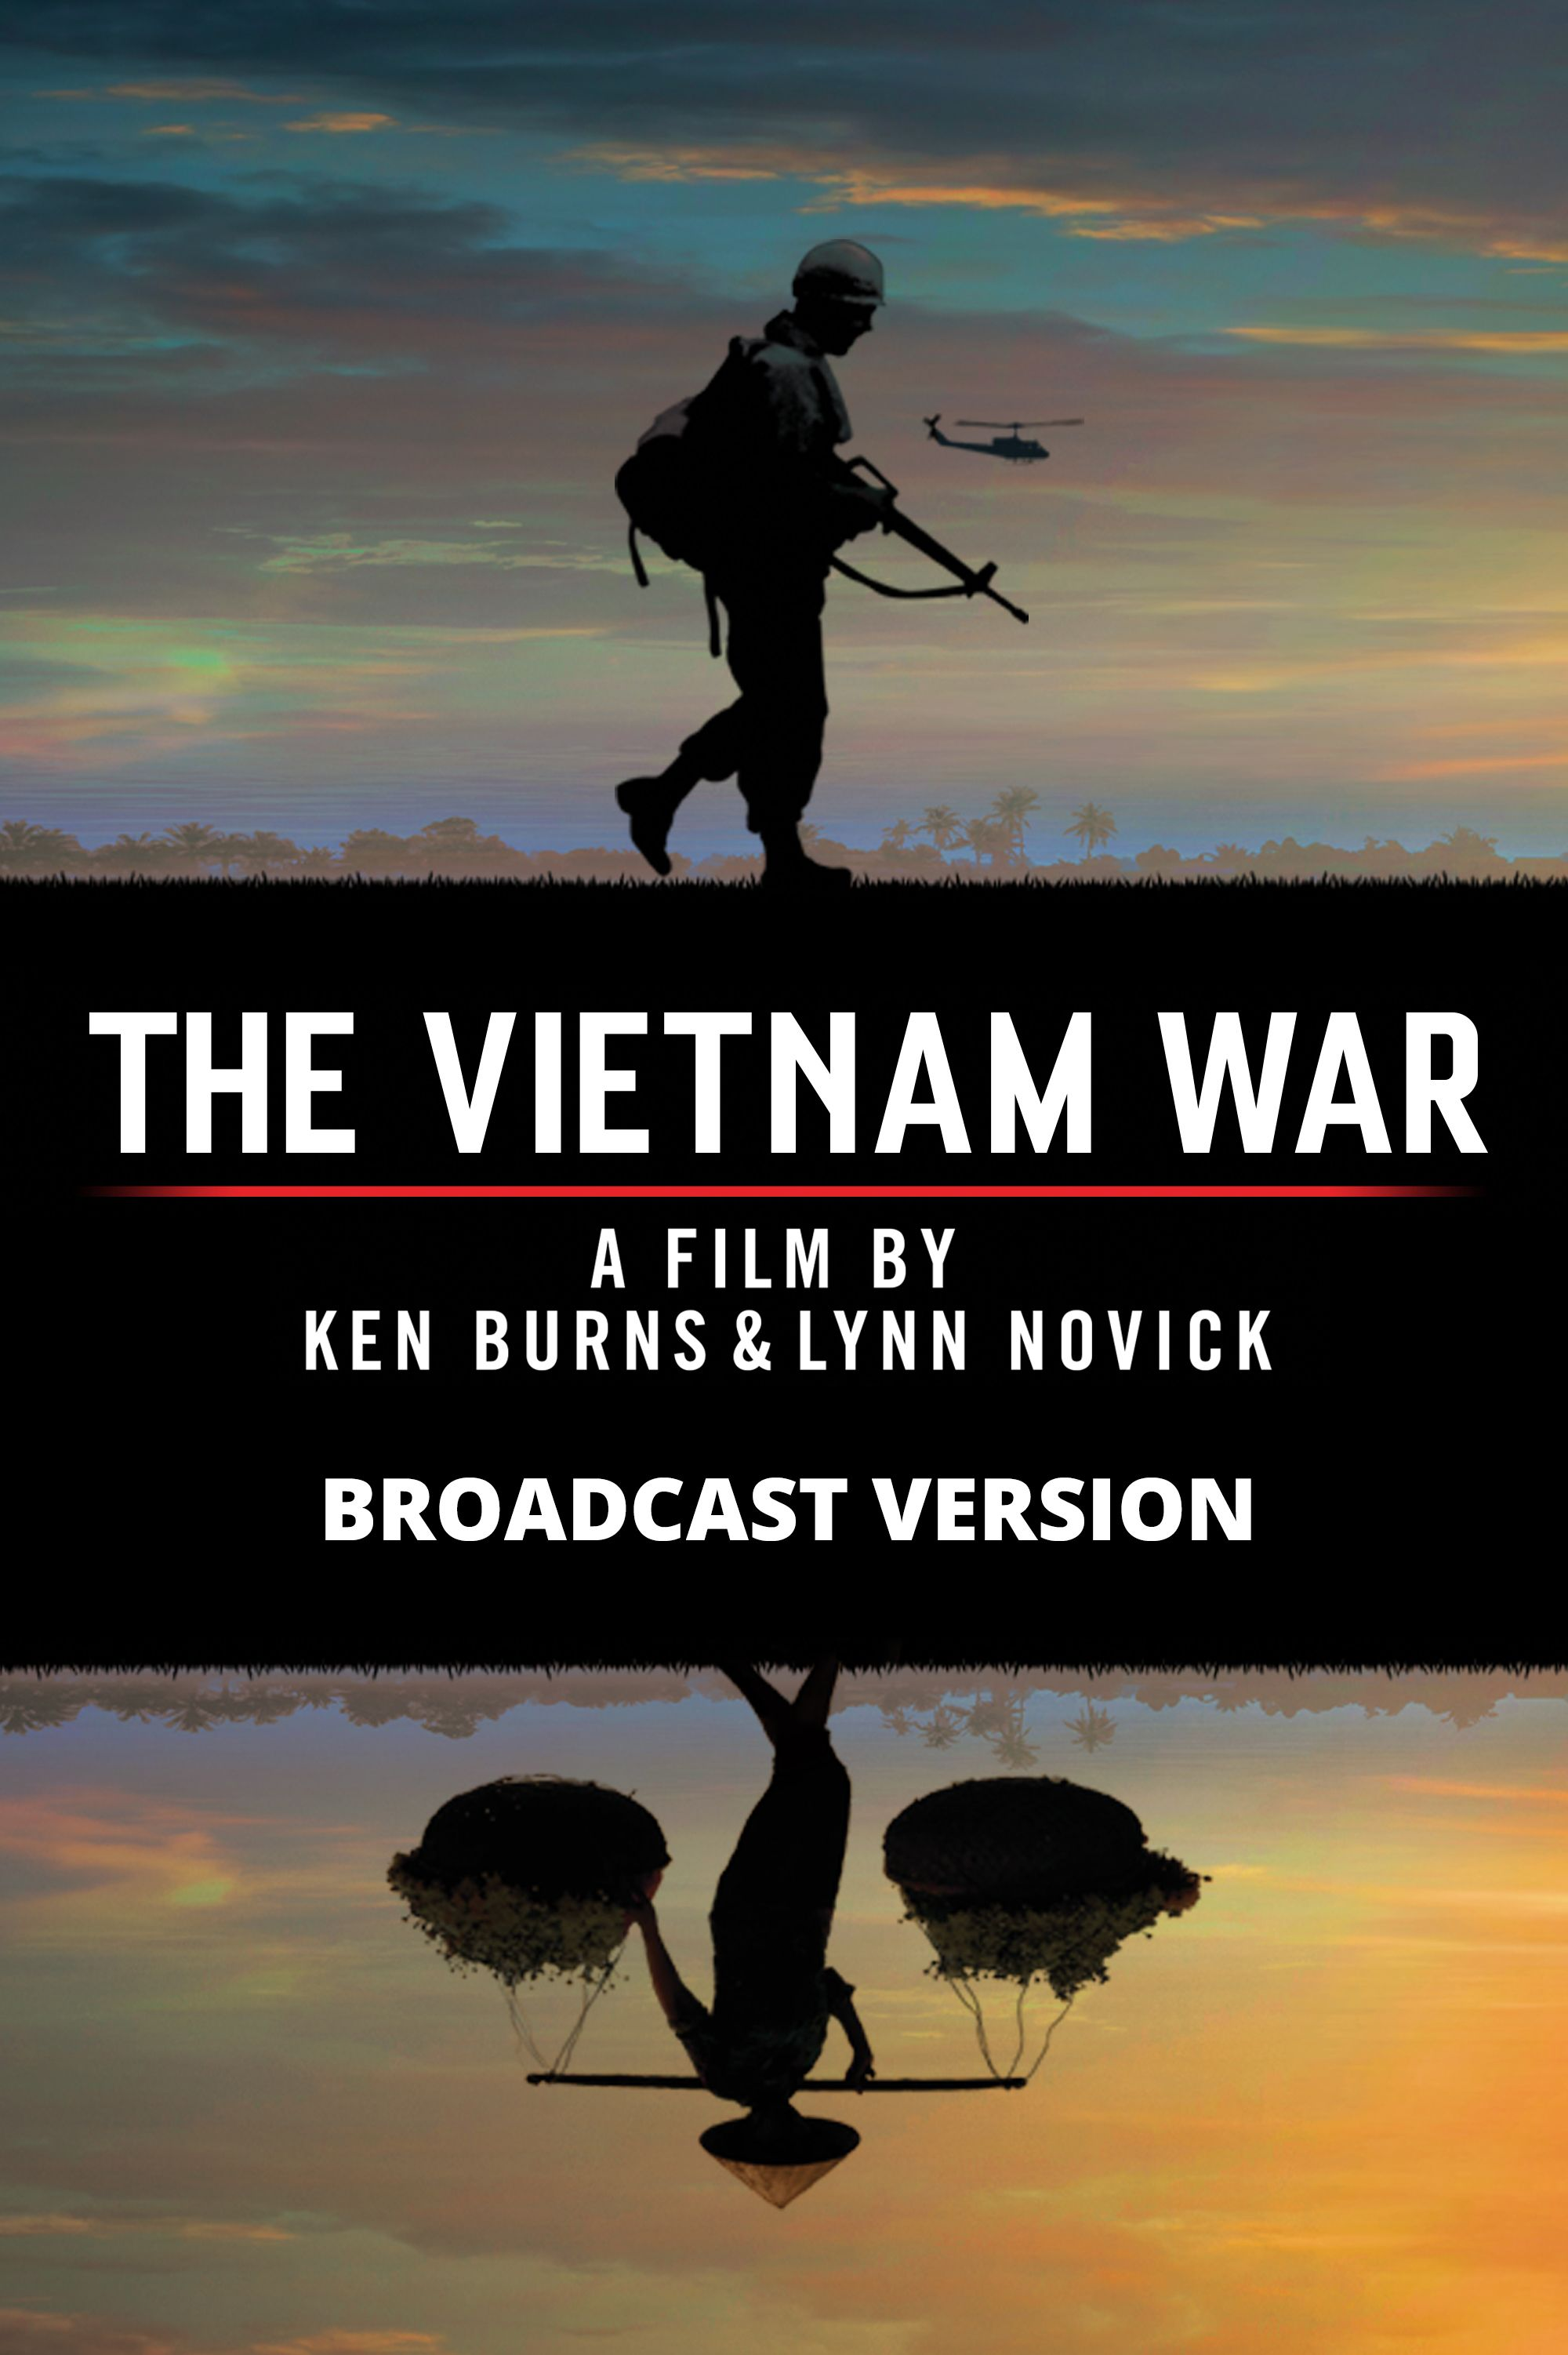 The Vietnam War, A Film by Ken Burns & Lynn Novick